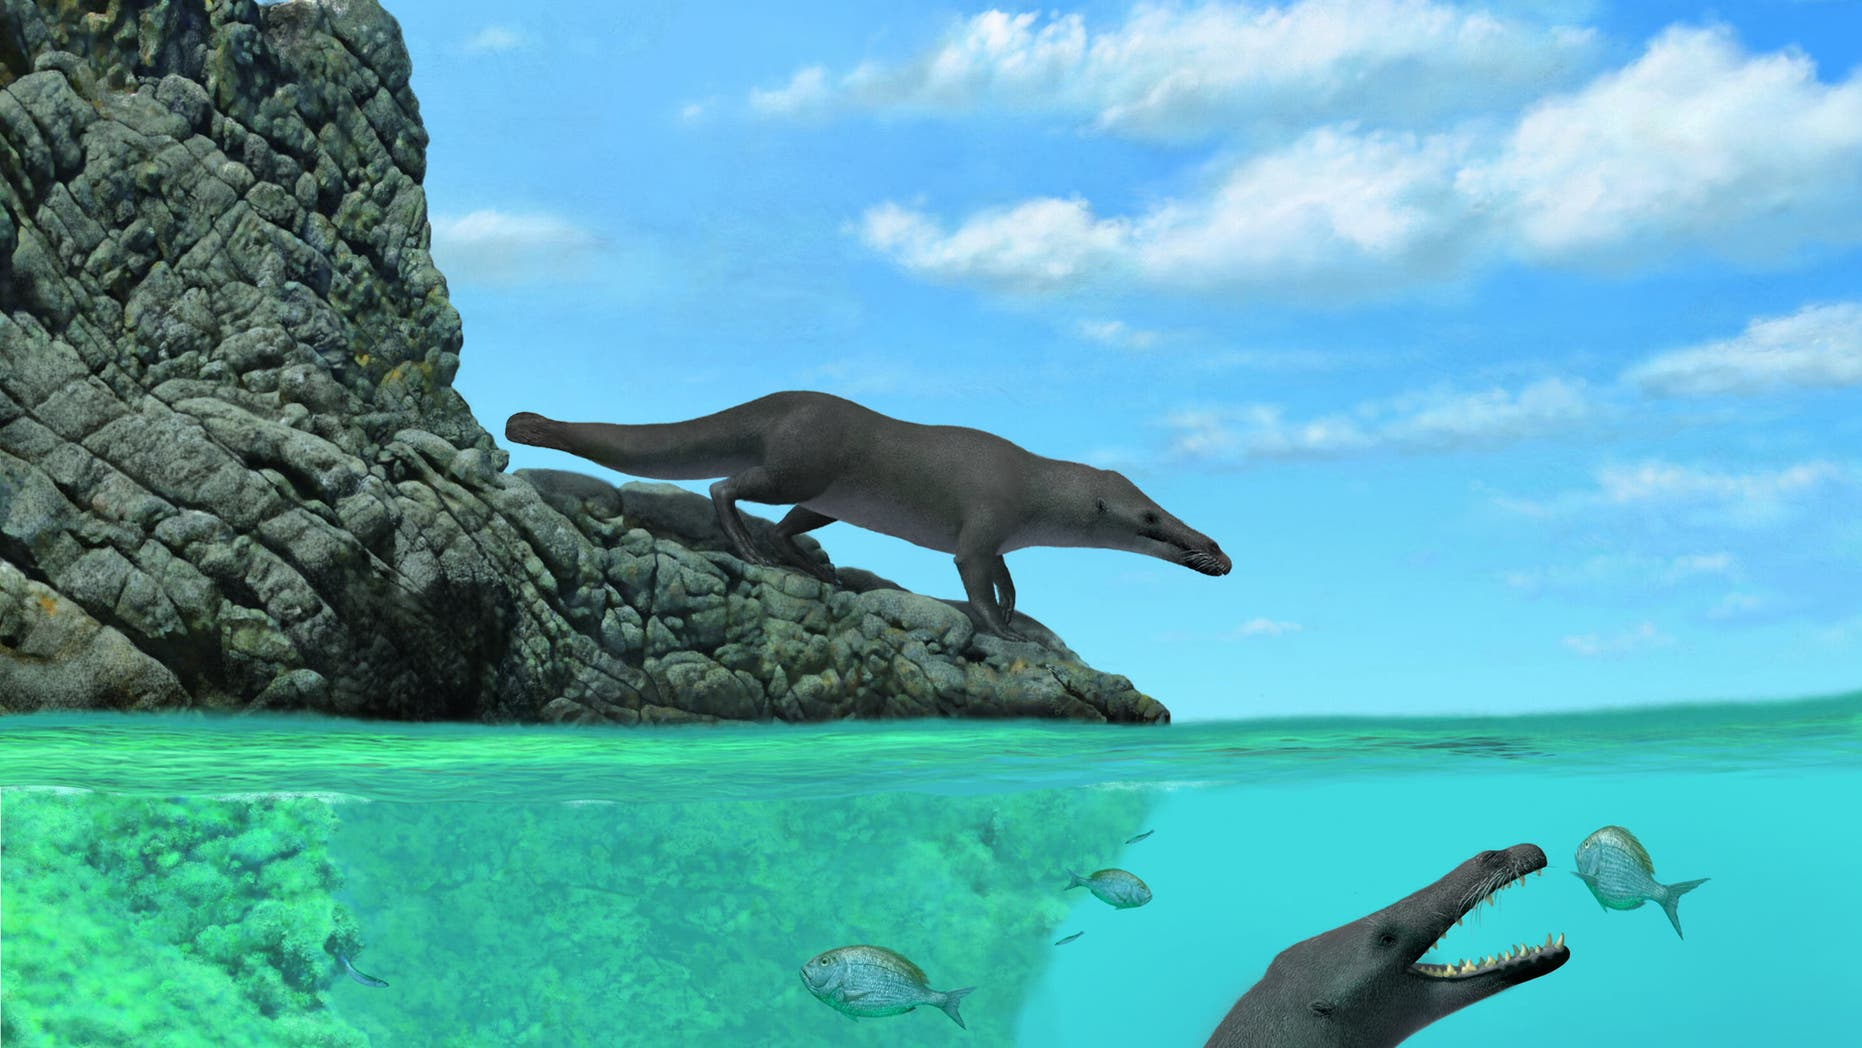 Ancient Four-Legged Whale Fossils Found In Peru, In A Groundbreaking Discovery